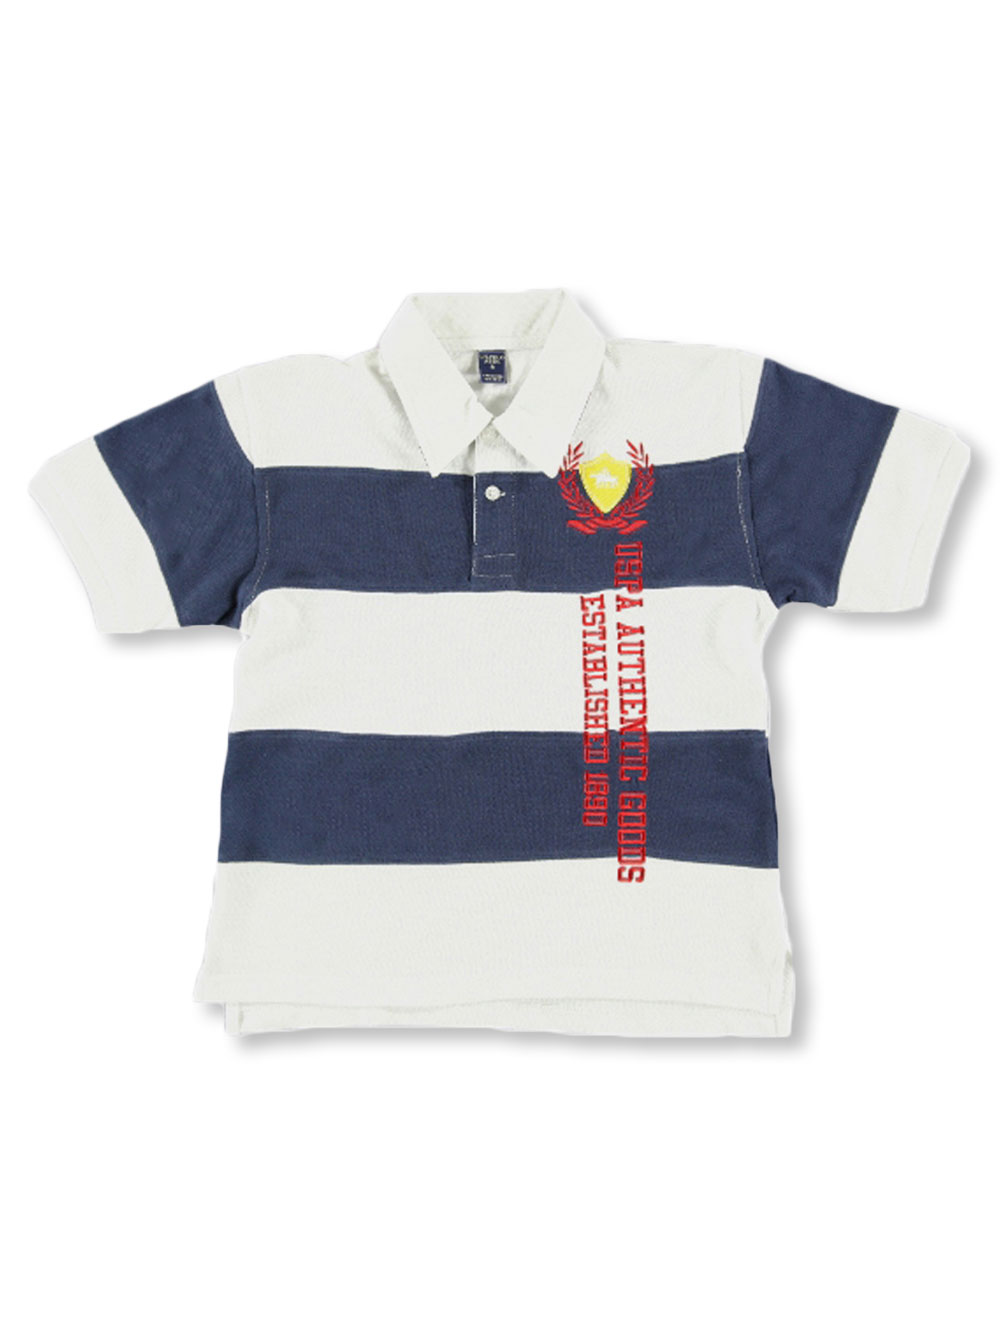 US Polo Assn Childrens Apparel U.S Boys Big Belted Patchwork